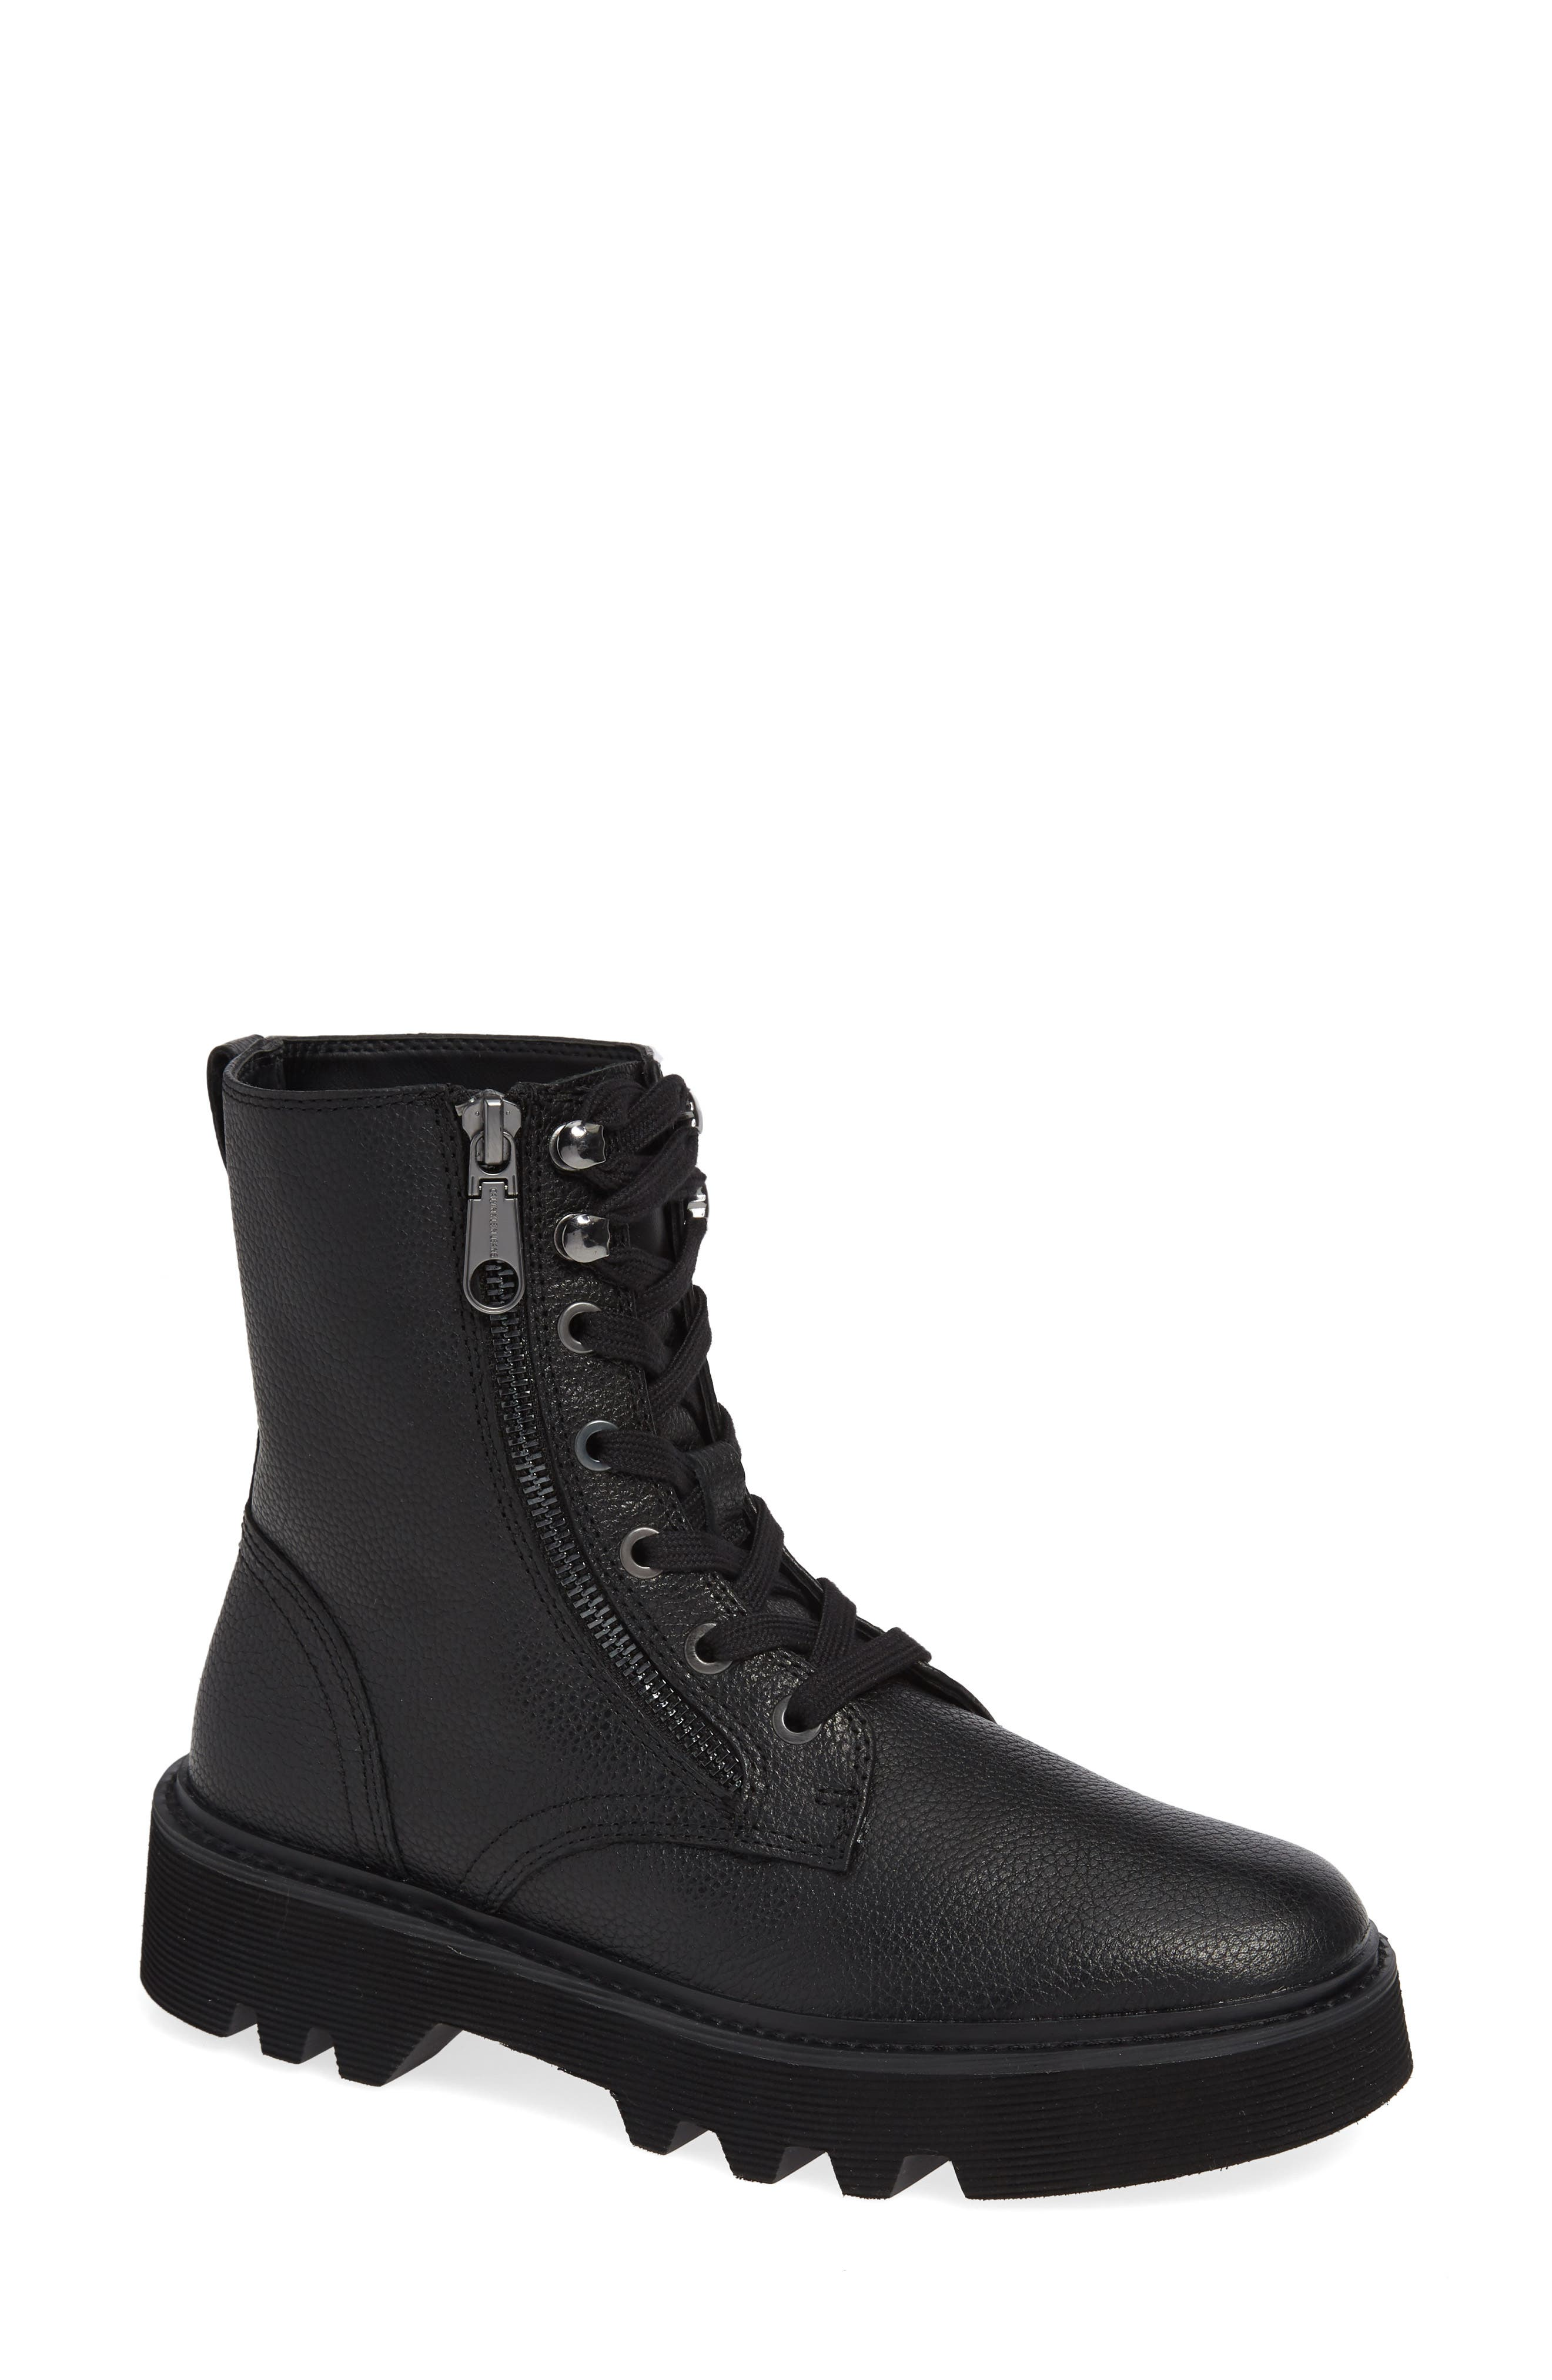 Diahne Combat Boot,                         Main,                         color, BLACK LEATHER